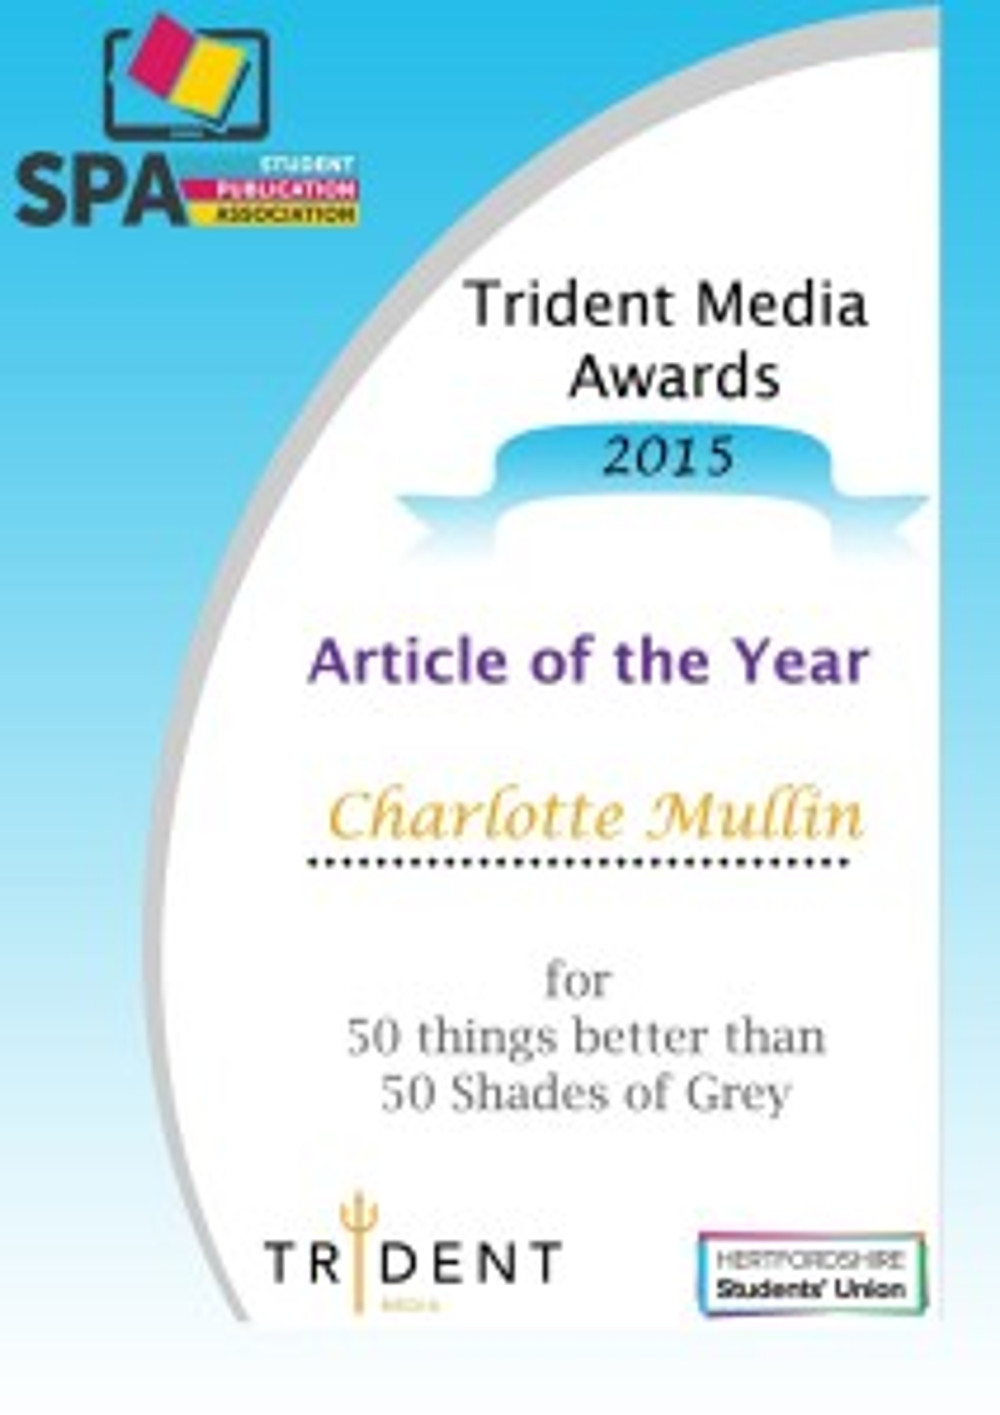 Article of the Year | 50 things better than 50 Shades of Grey